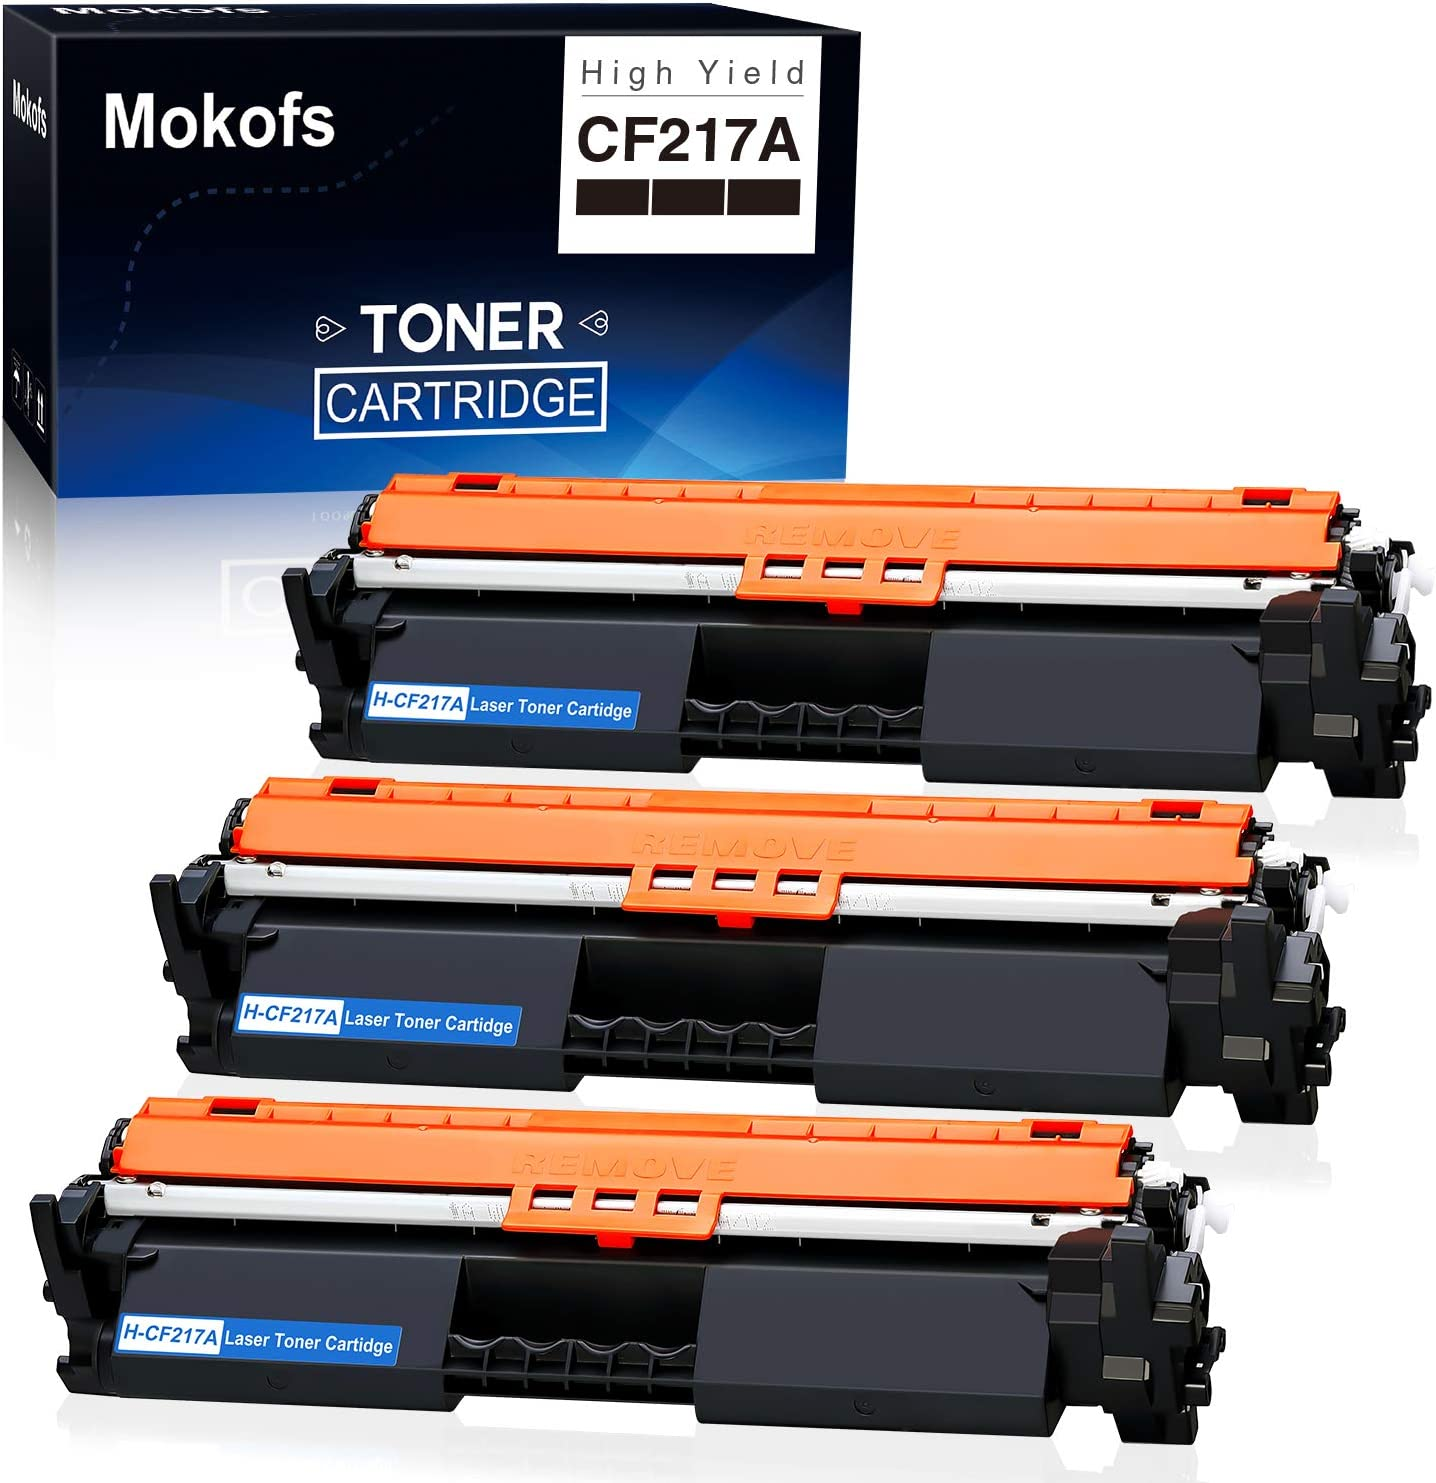 Mokofs CF217A Toner Carteidge Compatible Replacement for HP 17A H-CF217A Toner Carteidges, Work on HP Laserjet Pro M102w M102a, Laserjet Pro MFP M130nw M130fw M130fn M130a Printer (Black, 3 Pack)